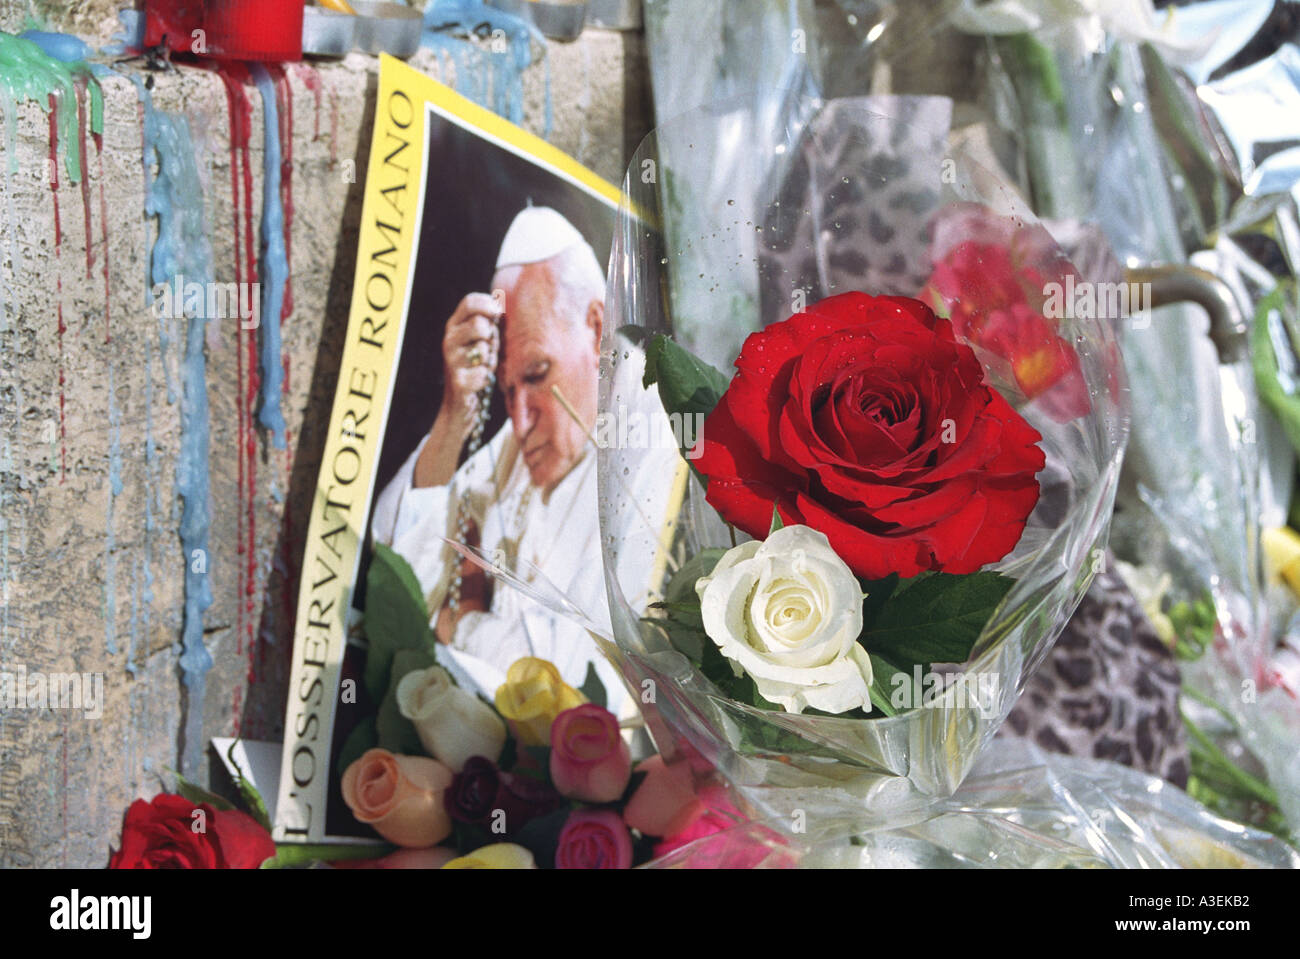 Red and white roses on altar to pope in st peters sq pope s death red and white roses on altar to pope in st peters sq pope s death rome apr 2005 mightylinksfo